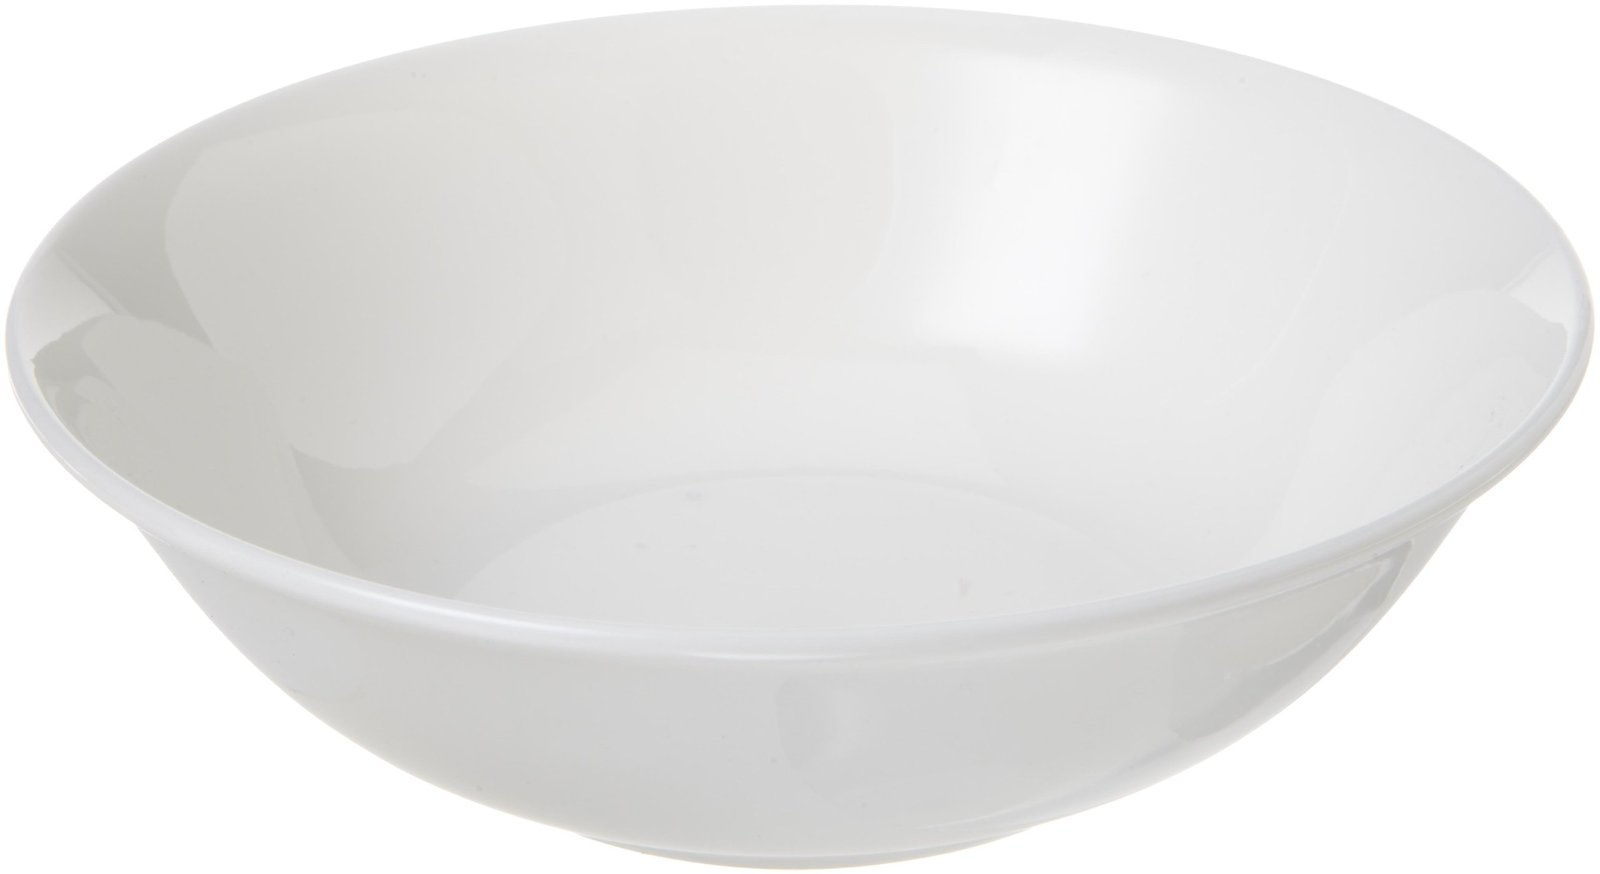 hight resolution of tognana pearl cereal bowl 6 1 2 6pc creamy white free shipping